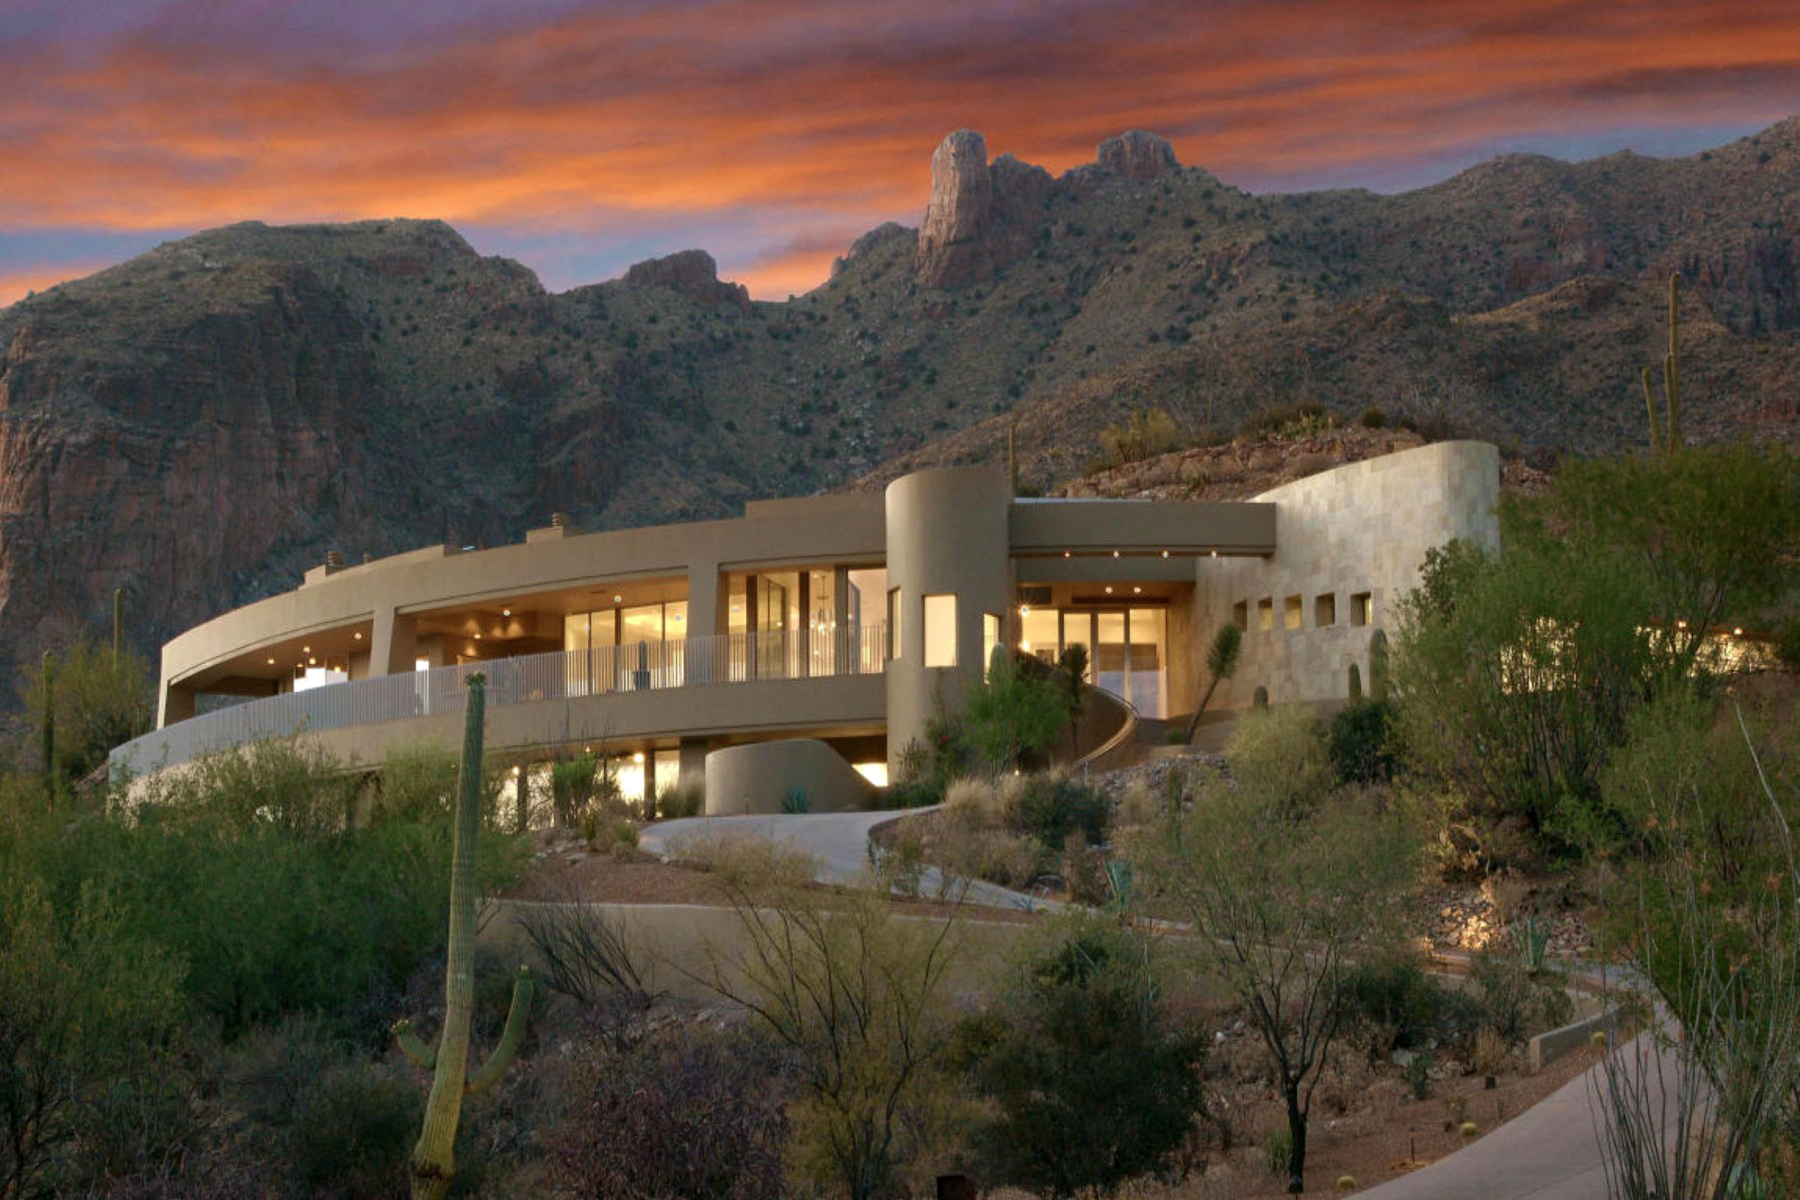 단독 가정 주택 용 매매 에 Visually Stunning Contemporary Masterpiece with Spectacular Views 7164 N Mercer Spring Tucson, 아리조나 85718 미국